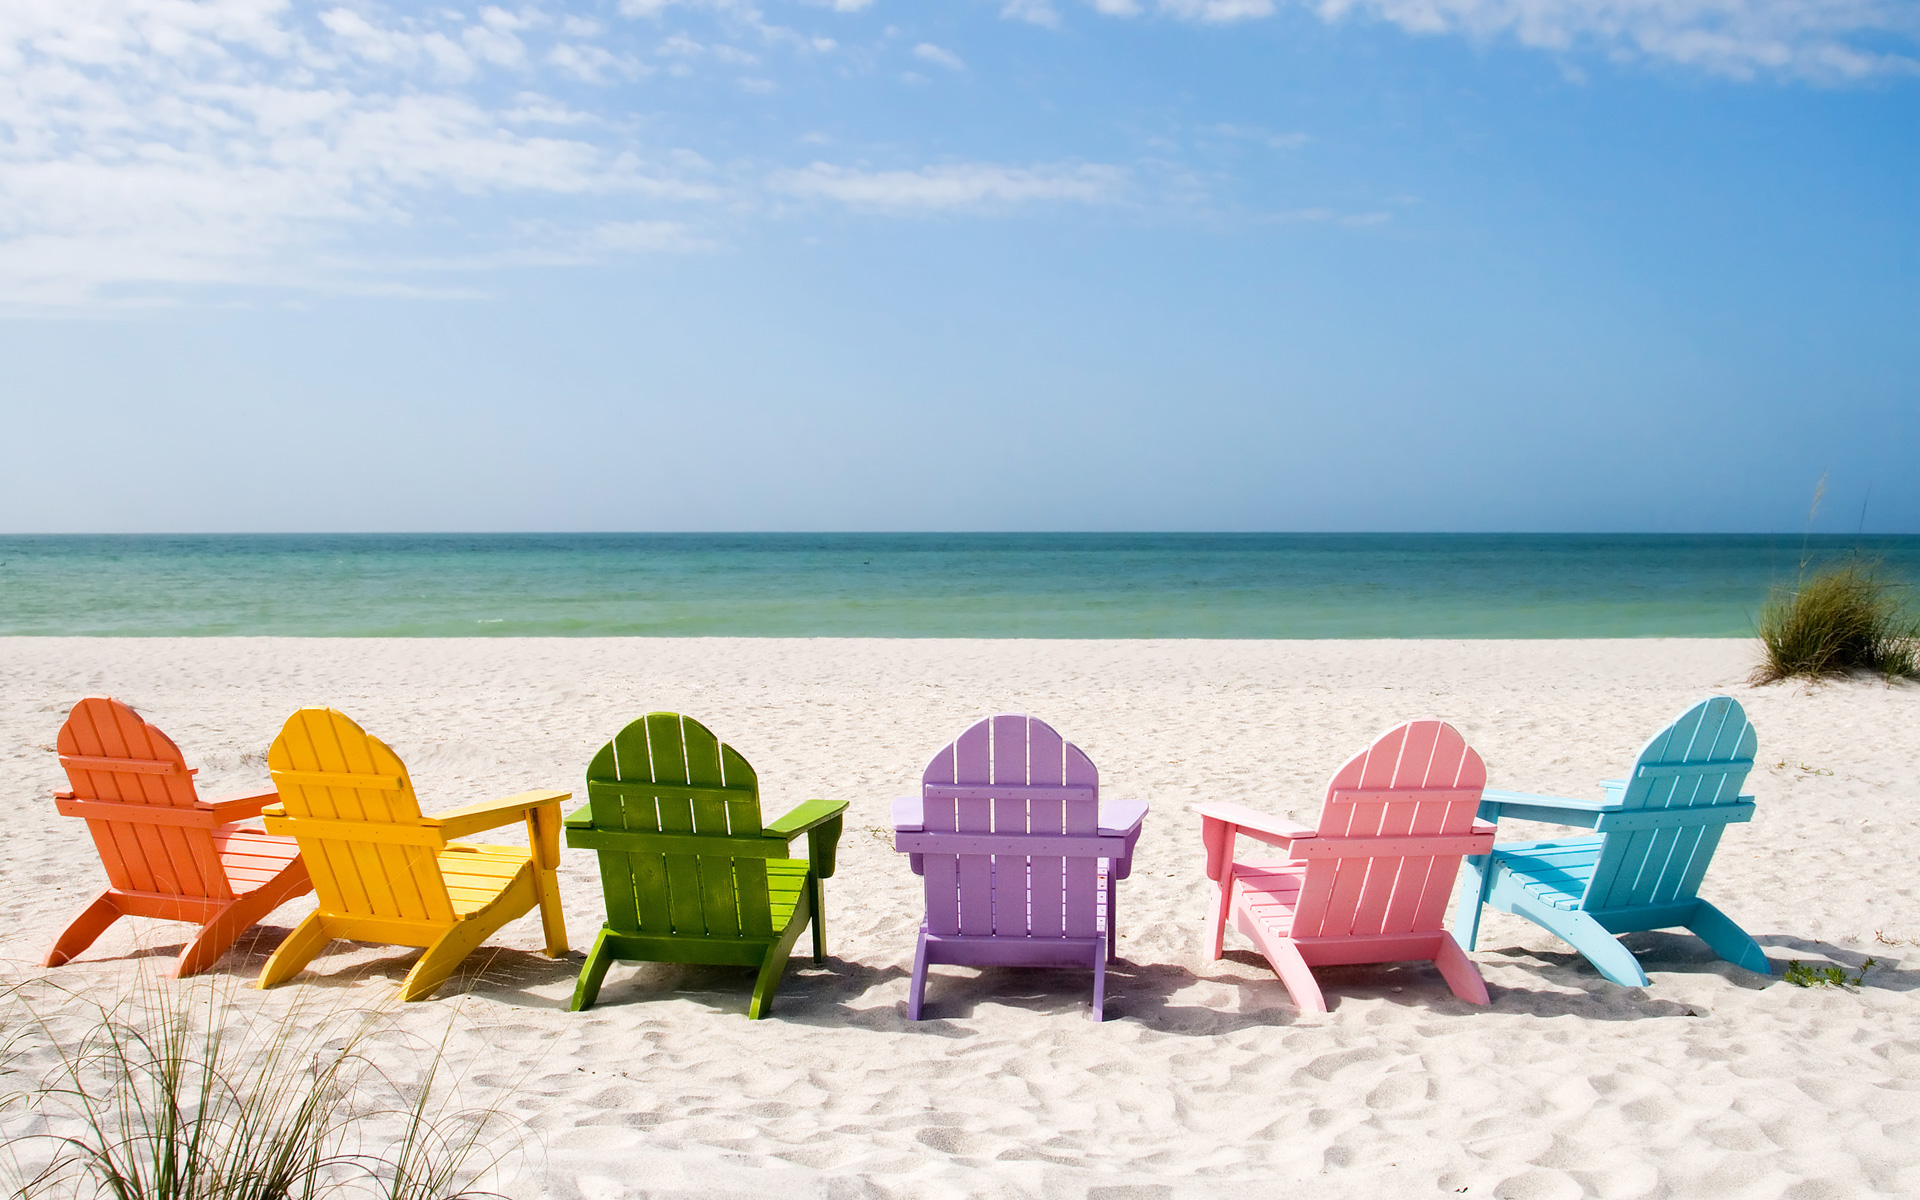 Delightful benches at the beach wallpaper - Beach Wallpapers